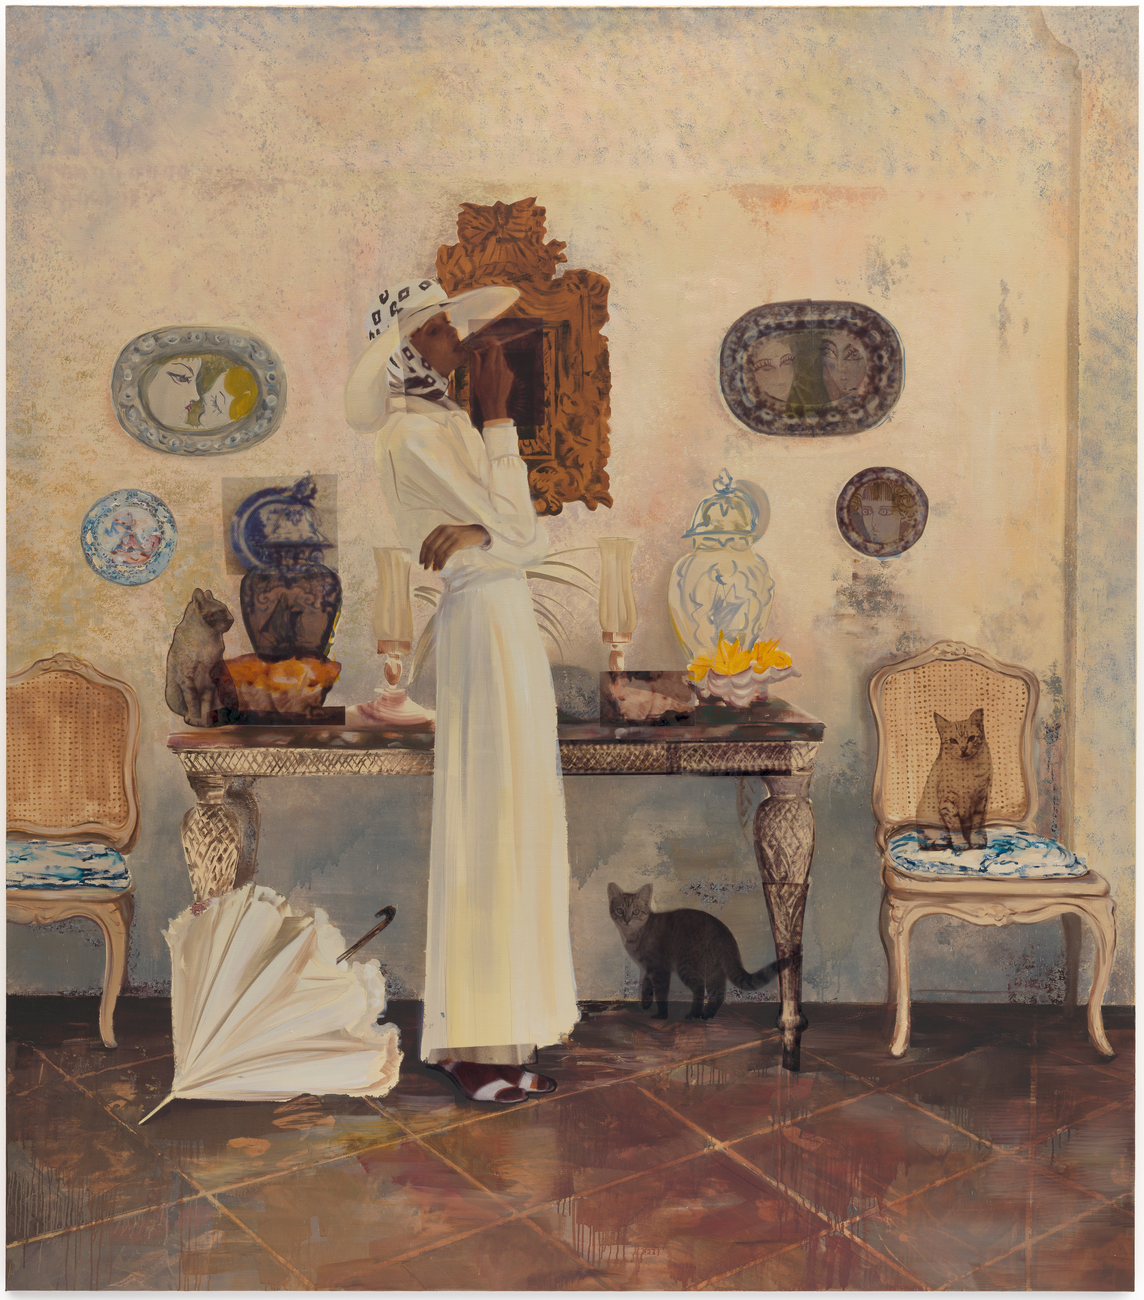 Artwork image, Paulina Olowska, A Portrait of the Artist - Indoors